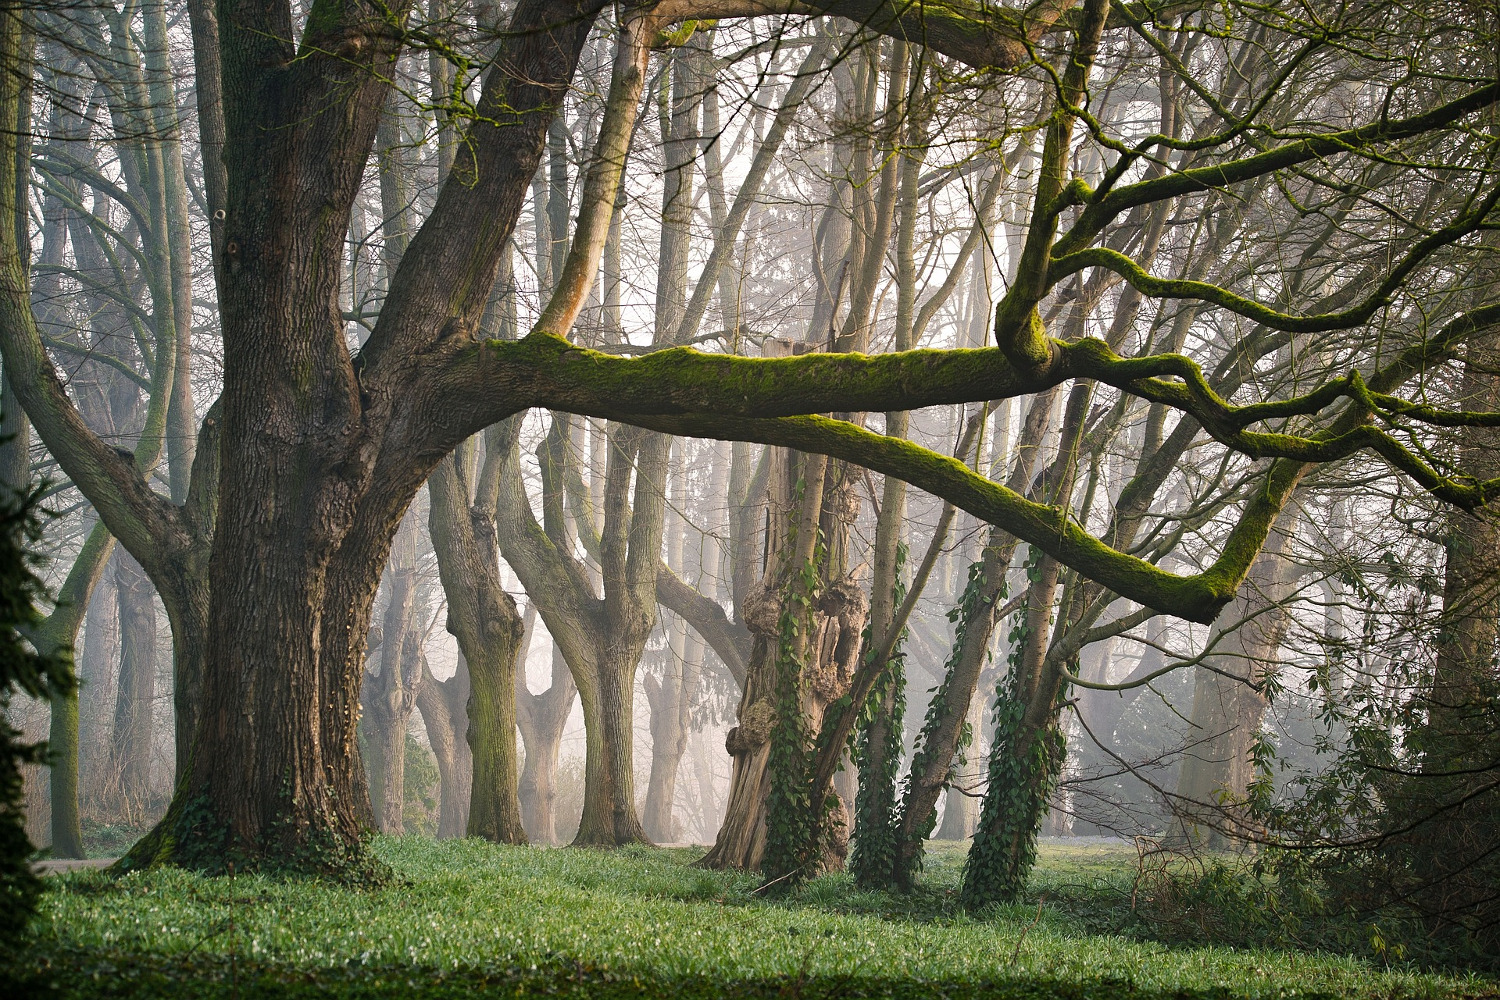 Trees in a forest with green grass and fog making trees in the background look like ghosts.